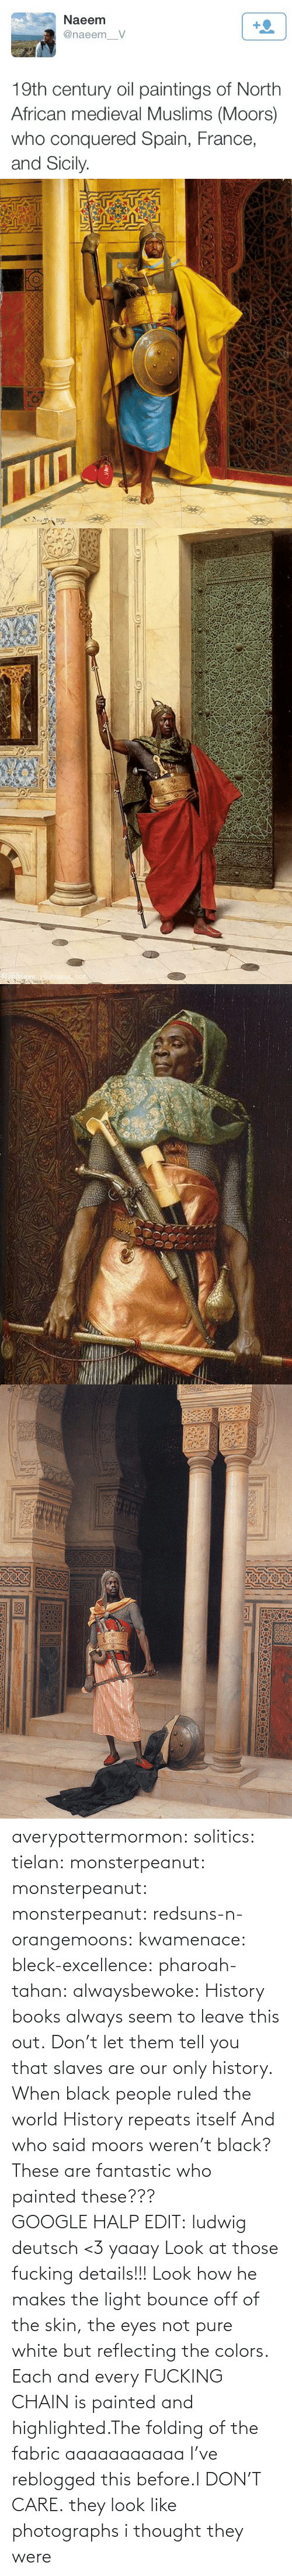 details: Naeem  +2  @naeem_V  19th century oil paintings of North  African medieval Muslims (Moors)  who conquered Spain, France,  and Sicily.   Nww.youhuaua com averypottermormon: solitics:  tielan:  monsterpeanut:  monsterpeanut:  monsterpeanut:  redsuns-n-orangemoons:  kwamenace:  bleck-excellence:  pharoah-tahan:  alwaysbewoke:  History books always seem to leave this out.  Don't let them tell you that slaves are our only history.  When black people ruled the world  History repeats itself  And who said moors weren't black?  These are fantastic who painted these???GOOGLE HALP EDIT: ludwig deutsch <3   yaaay   Look at those fucking details!!! Look how he makes the light bounce off of the skin, the eyes not pure white but reflecting the colors. Each and every FUCKING CHAIN is painted and highlighted.The folding of the fabric aaaaaaaaaaa  I've reblogged this before.I DON'T CARE.  they look like photographs   i thought they were